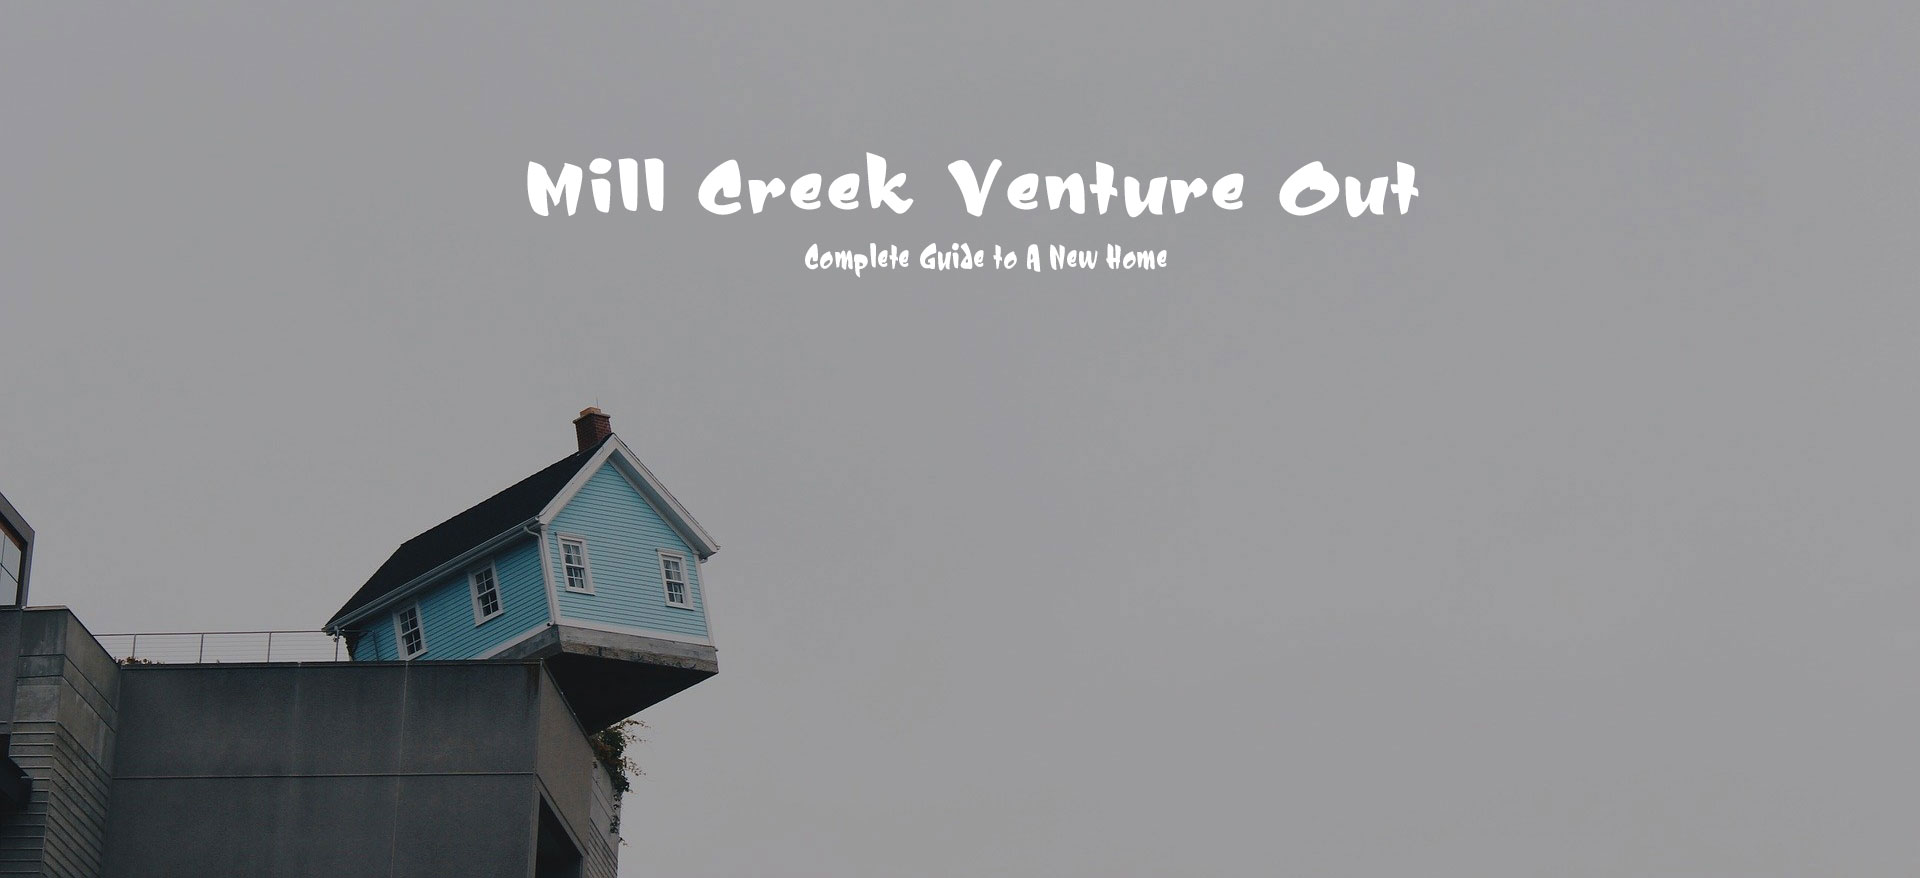 Mill Creek Venture Out